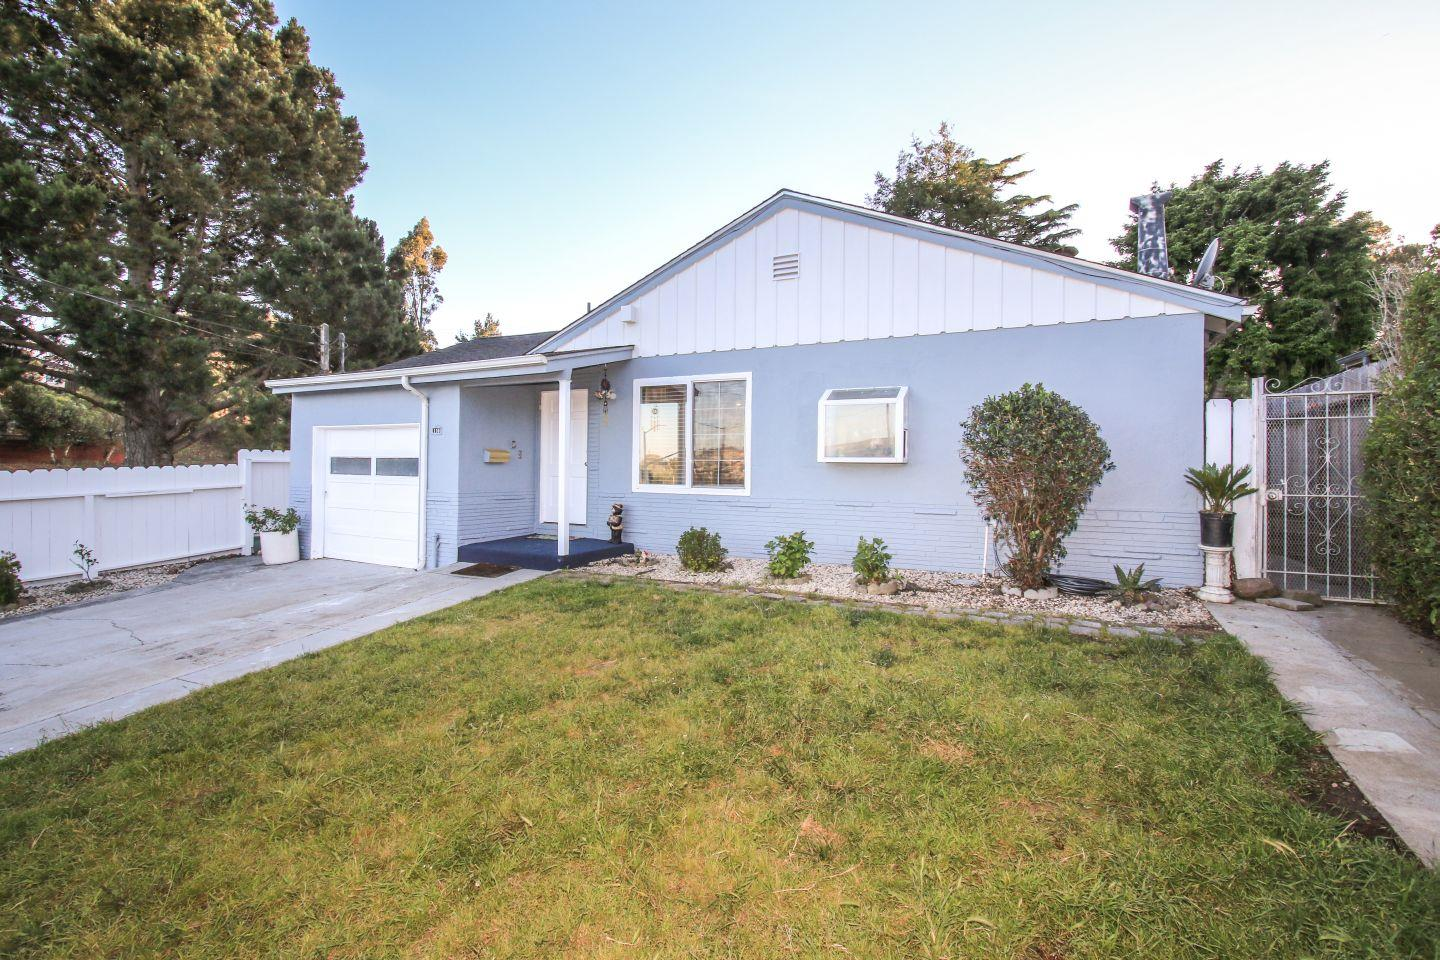 Additional photo for property listing at 110 Longford Drive  South San Francisco, California 94080 Estados Unidos